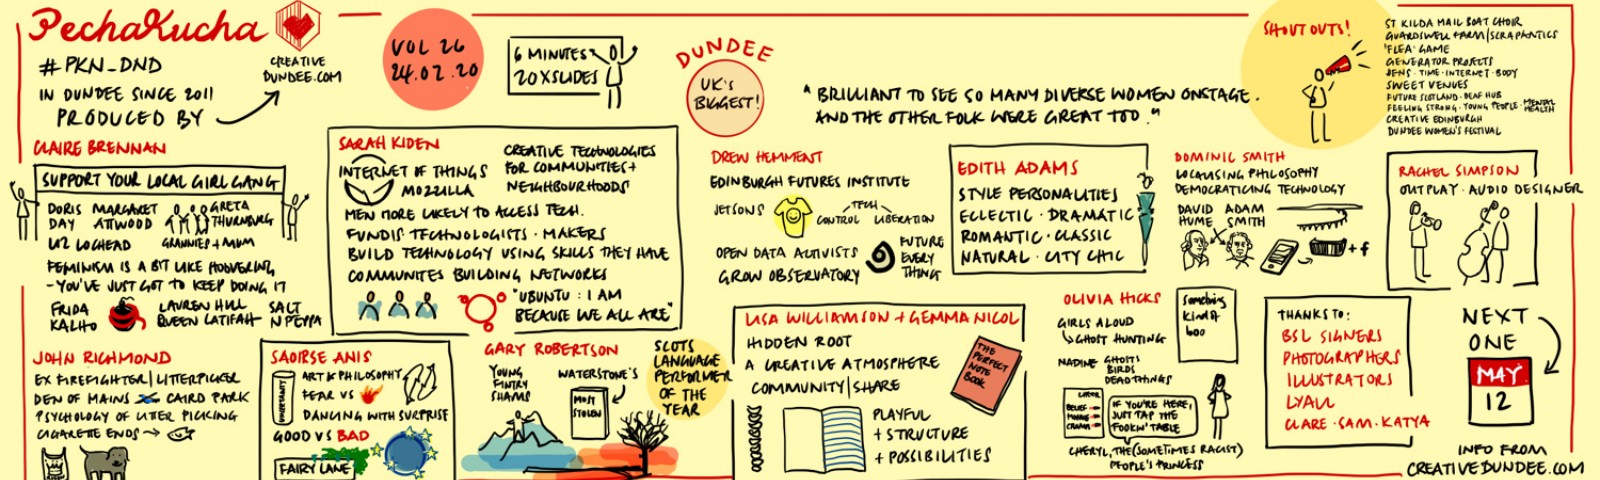 Sketchnote — notes and pictures about at Pecha Kucha Dundee full details of event https://bit.ly/2L8wKVX